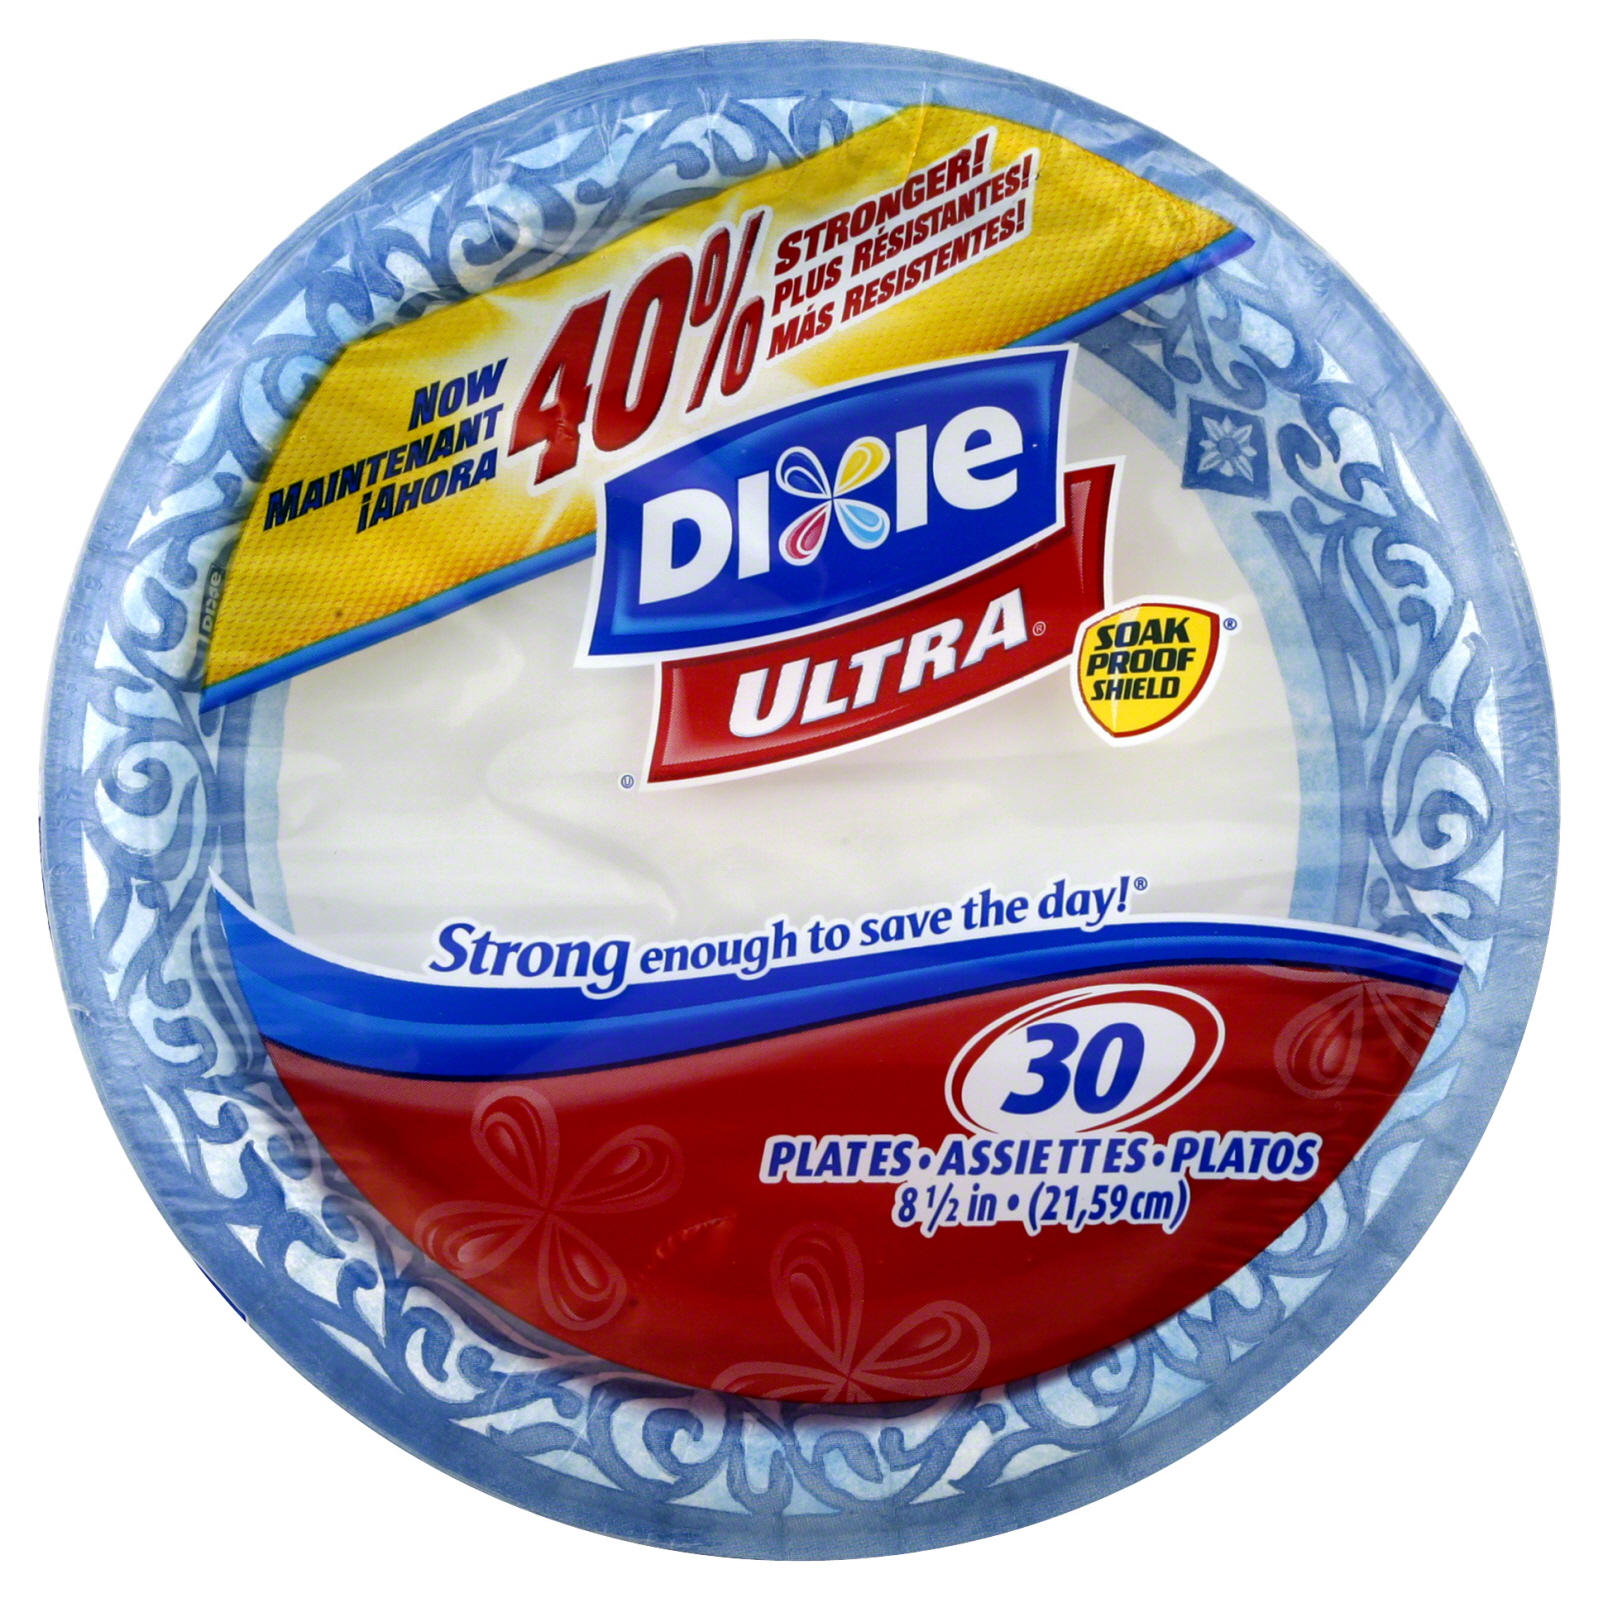 Dixie Ultra Plates 812 Inch 30 plates